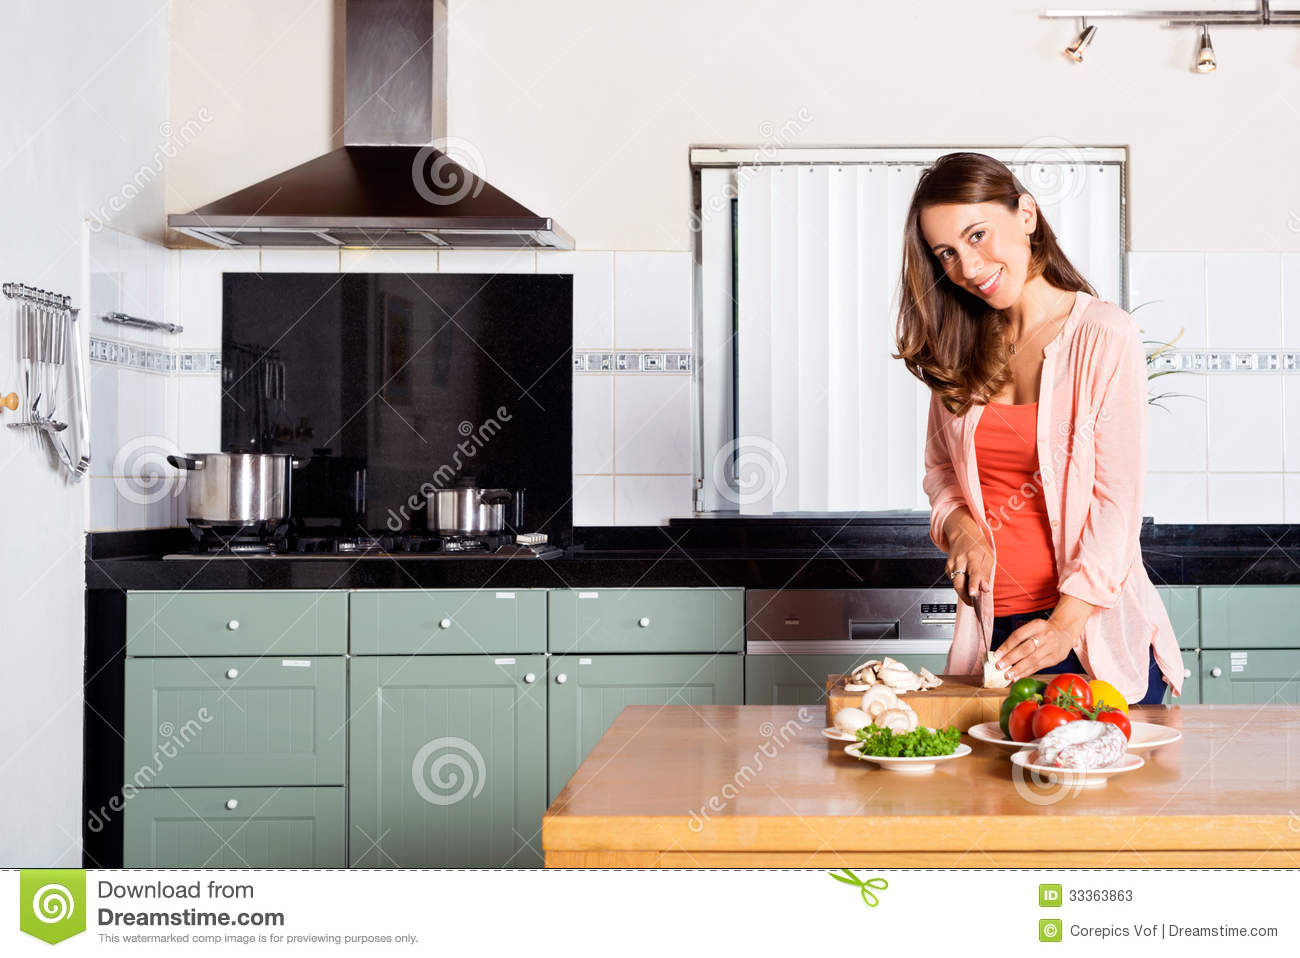 Woman Cutting Vegetables At Kitchen Counter